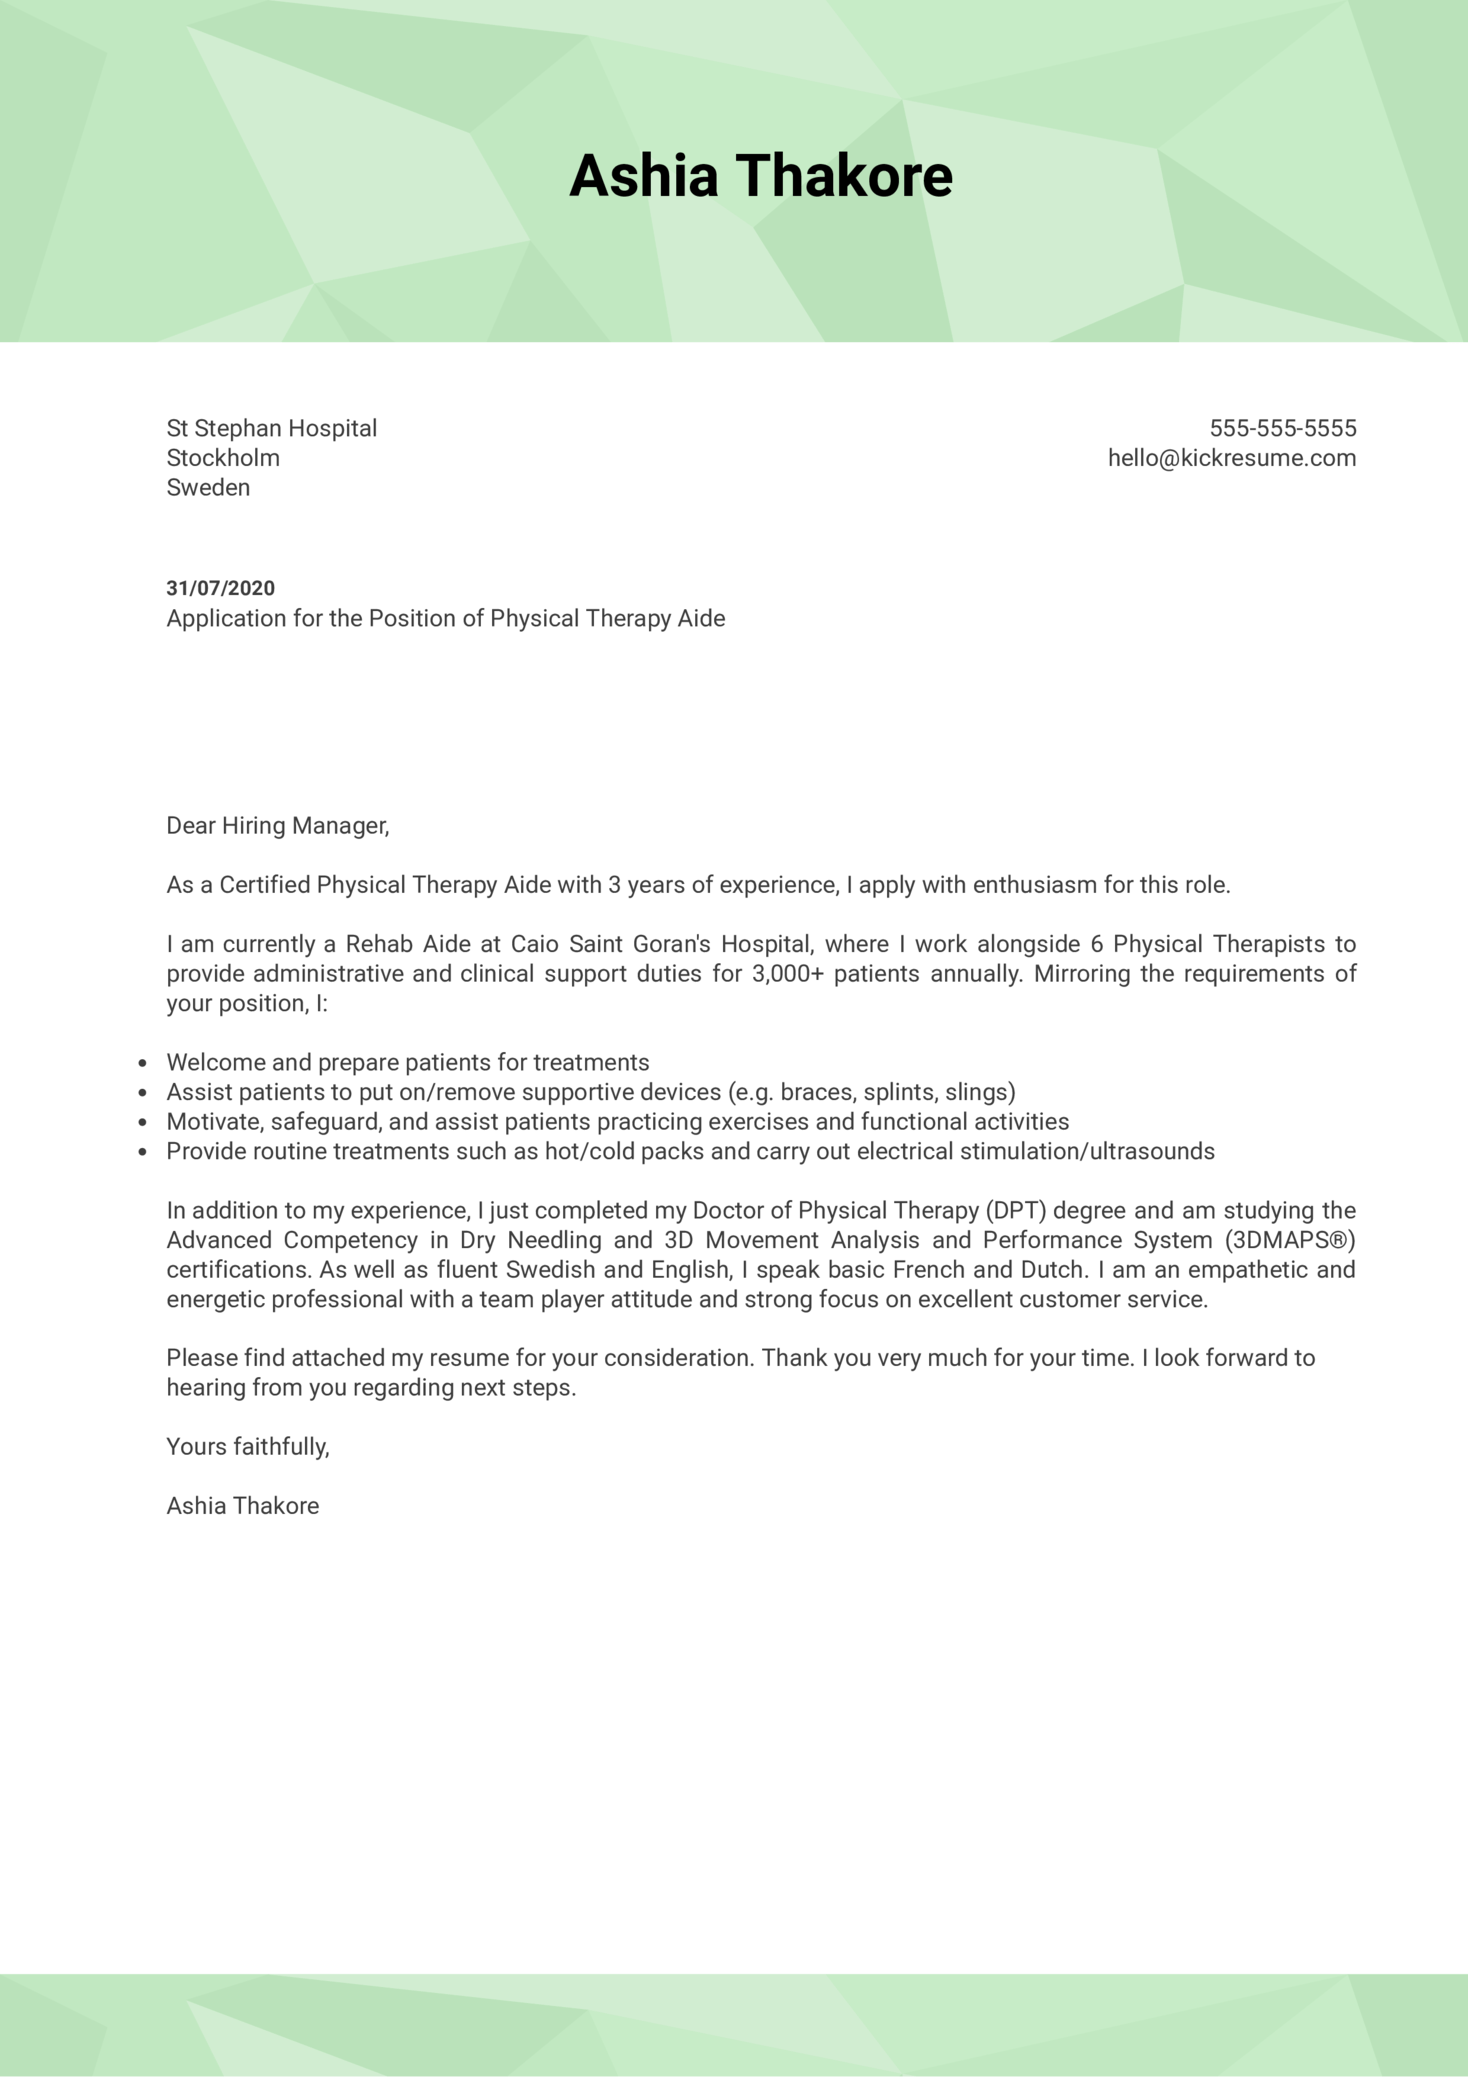 Physical Therapy Aide Cover Letter Example